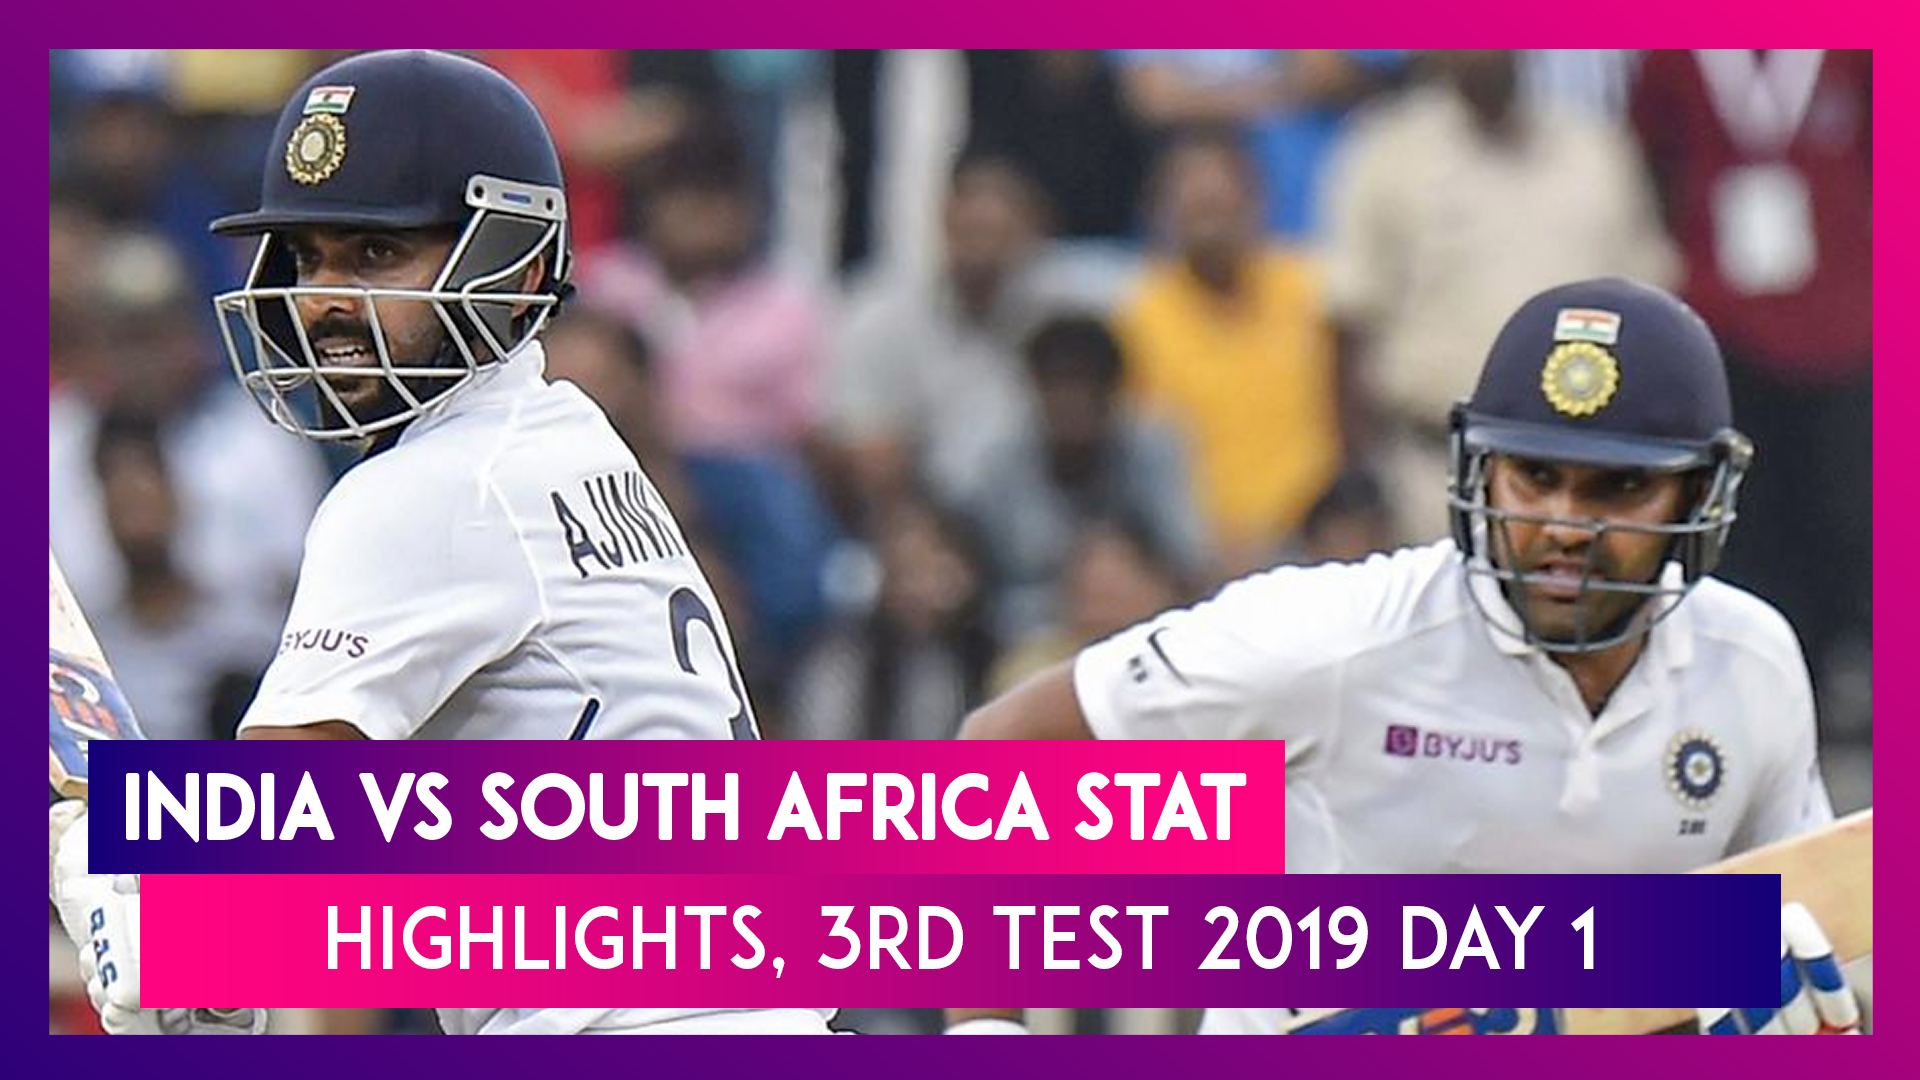 India vs South Africa Stat Highlights, 3rd Test 2019 Day 1: Rohit Sharma Hits Ton, India 224/3